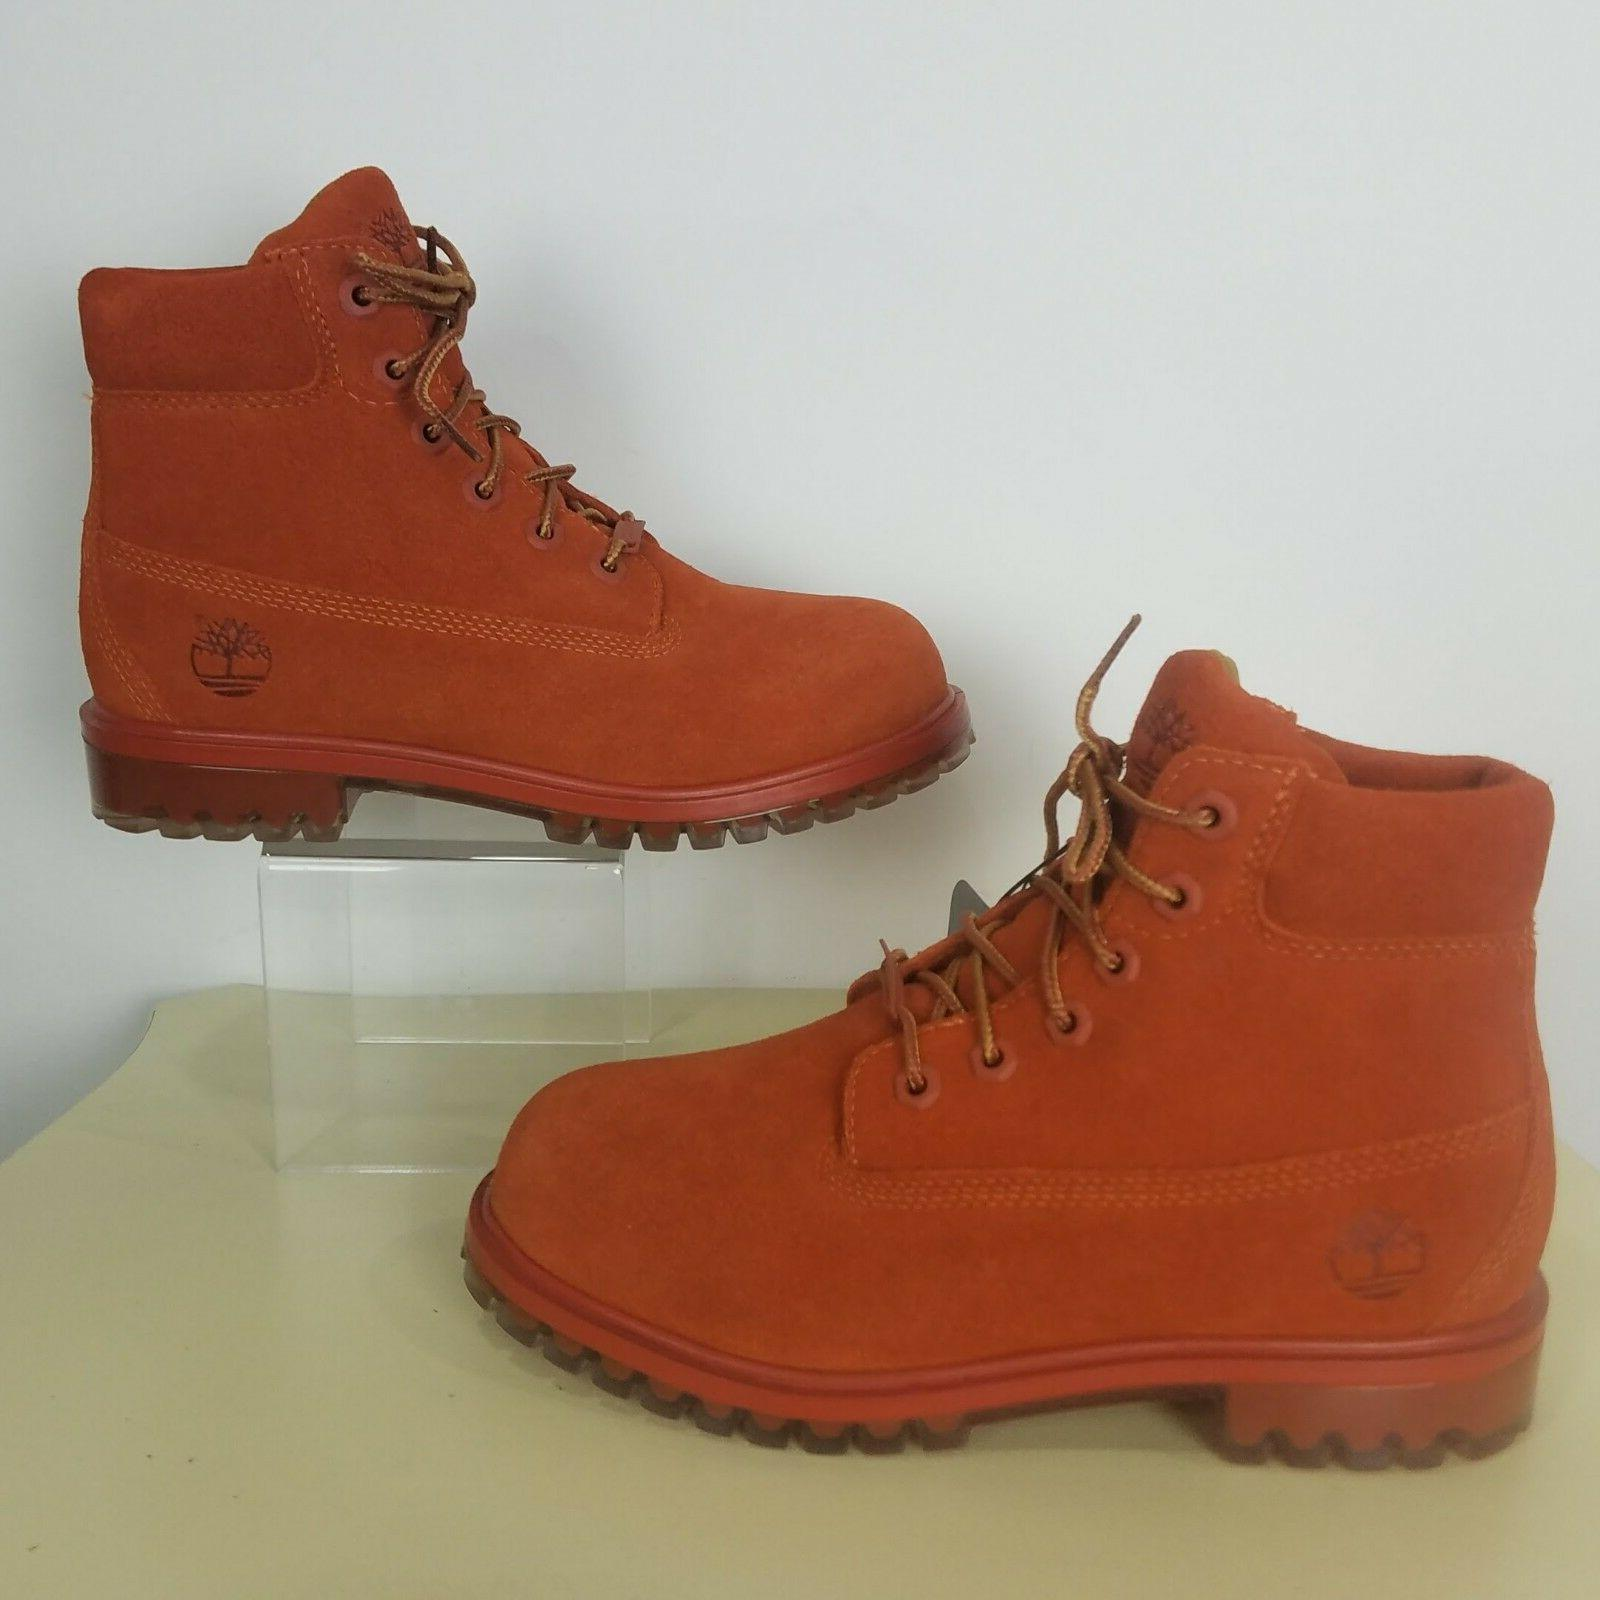 Timberland 4.5 Icy Sole Waterproof Insulated